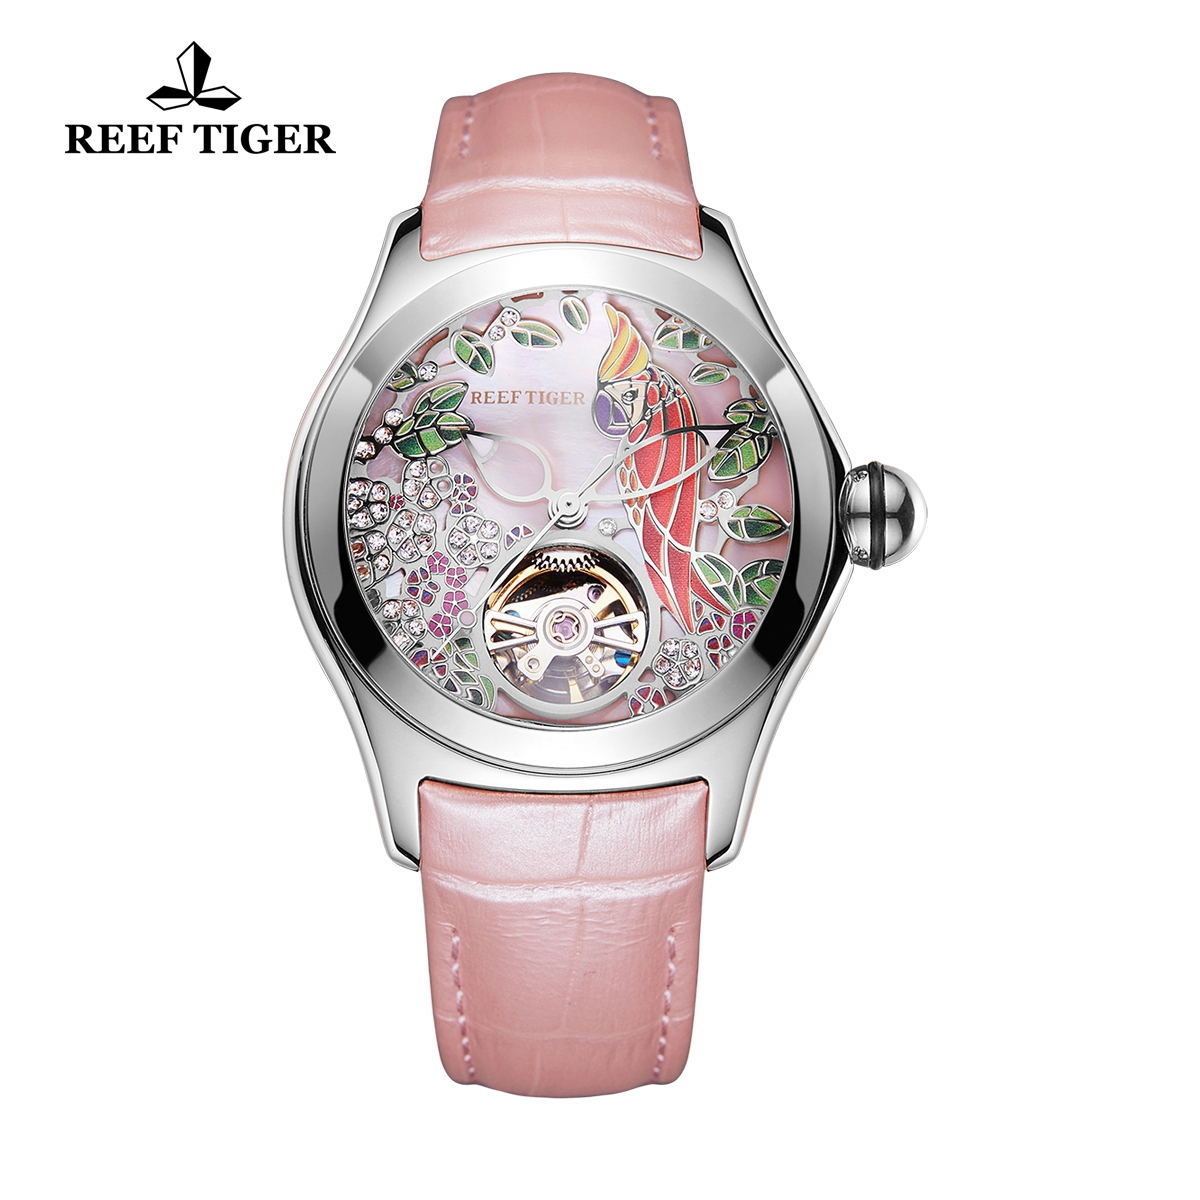 Reef Tiger Aurora Parrot Casual Watches Steel Case Automatic Watch Leather Strap RGA7105-YPP